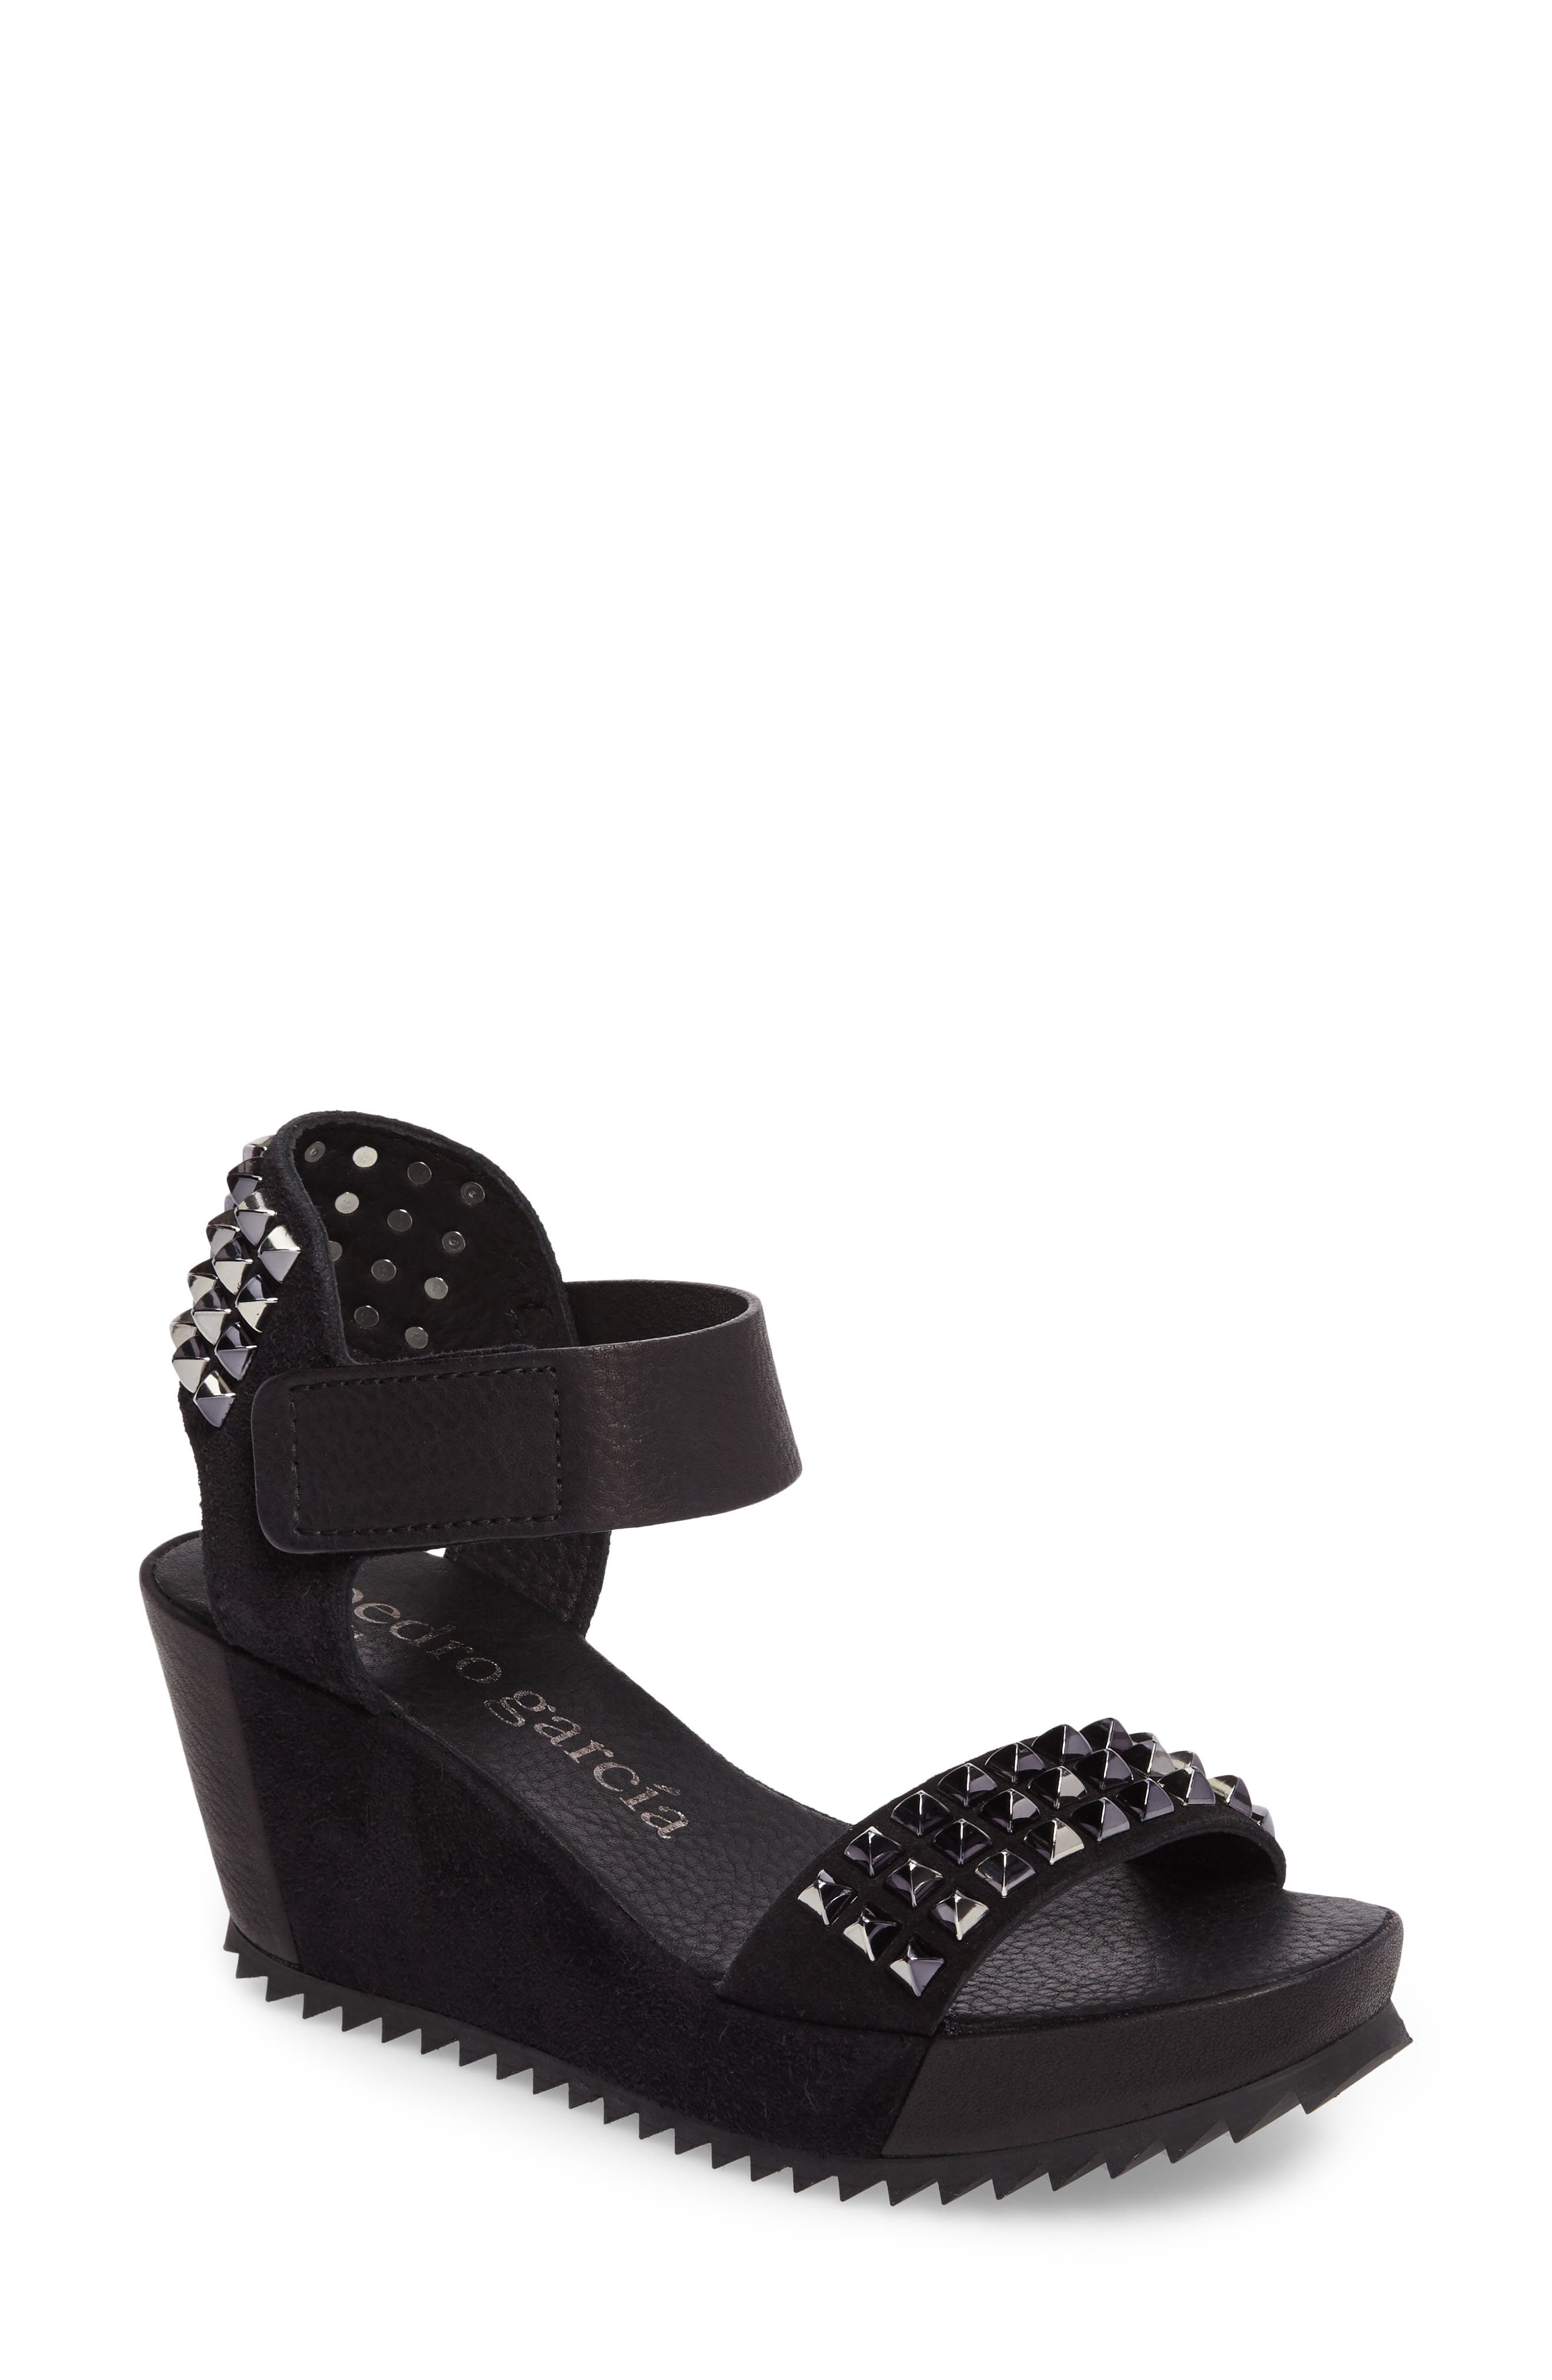 Alternate Image 1 Selected - Pedro Garcia Fortuna Studded Wedge Sandal (Women)